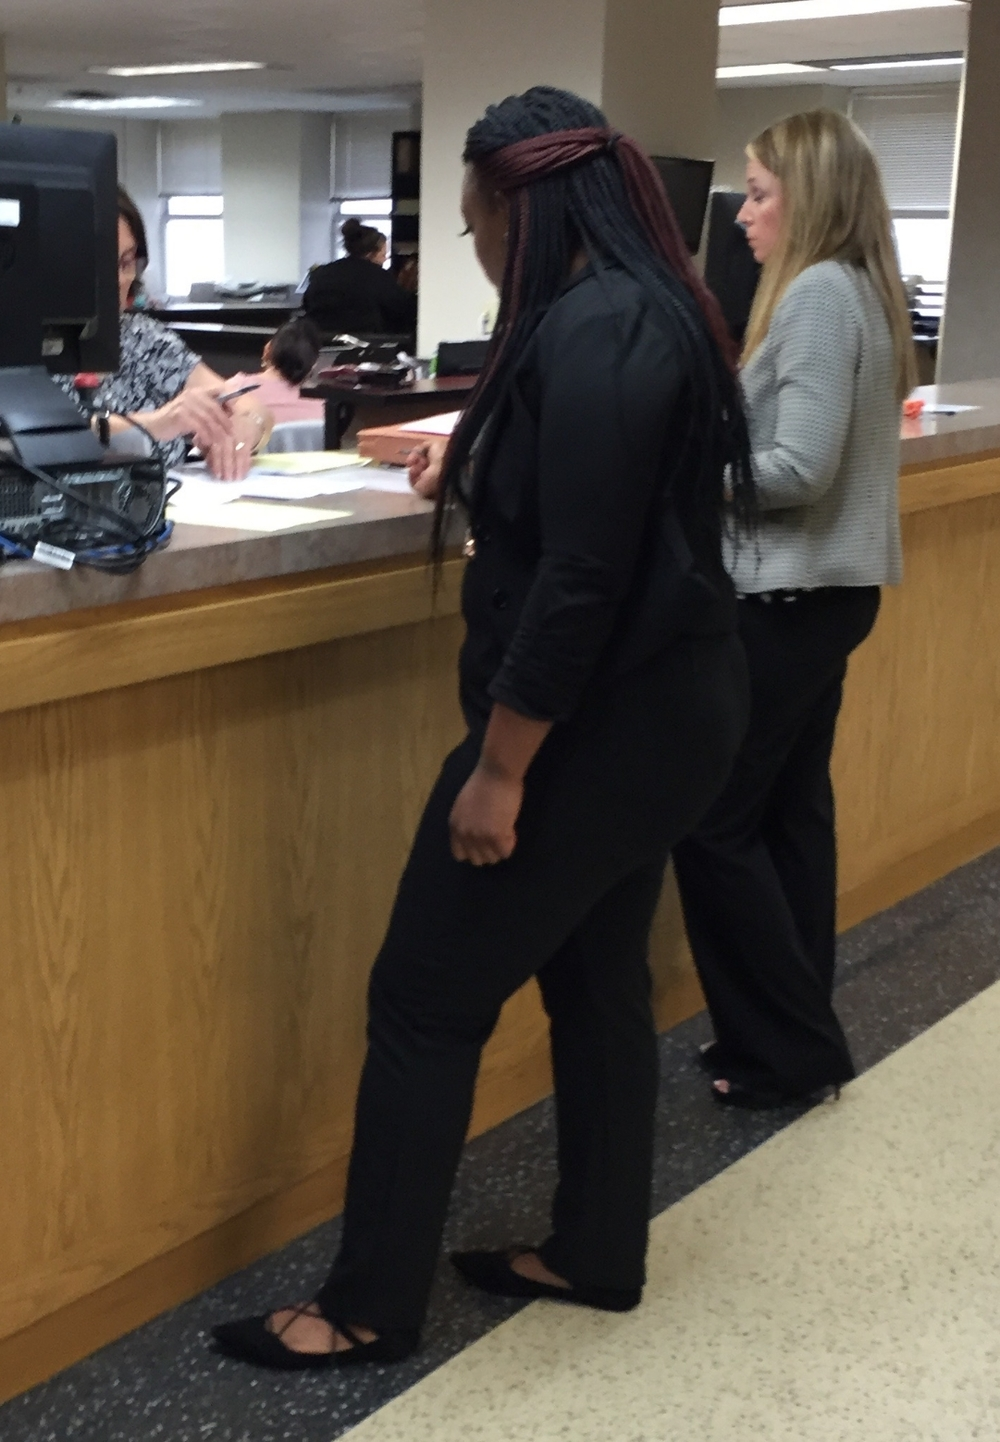 Hill at the court clerk's counter being told she has to pay all the court costs.